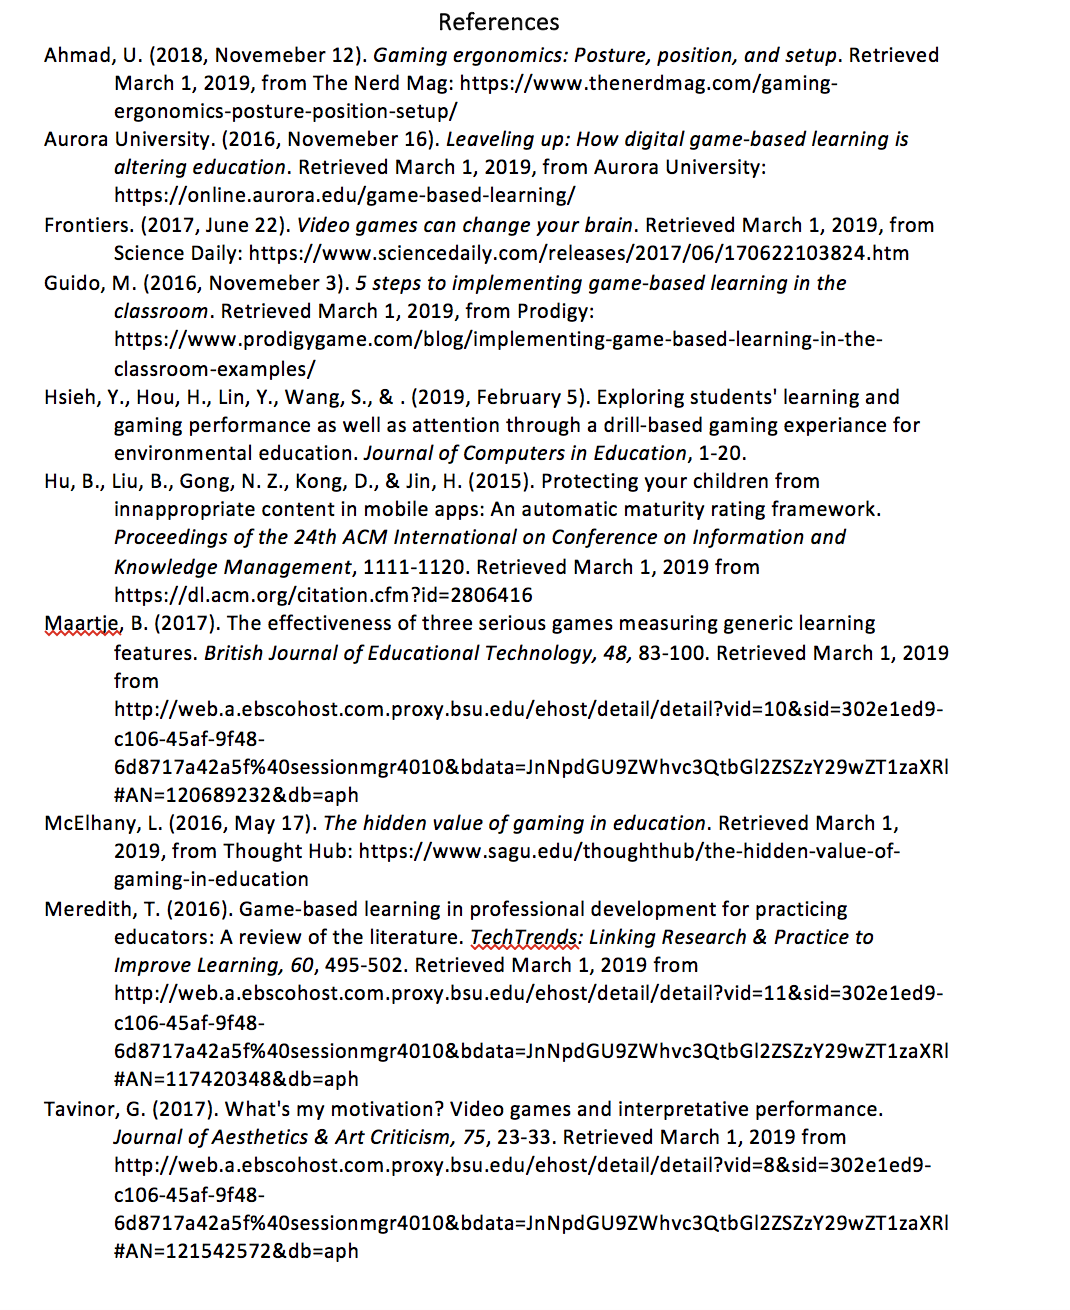 References In Apa Included In The Picture Citations